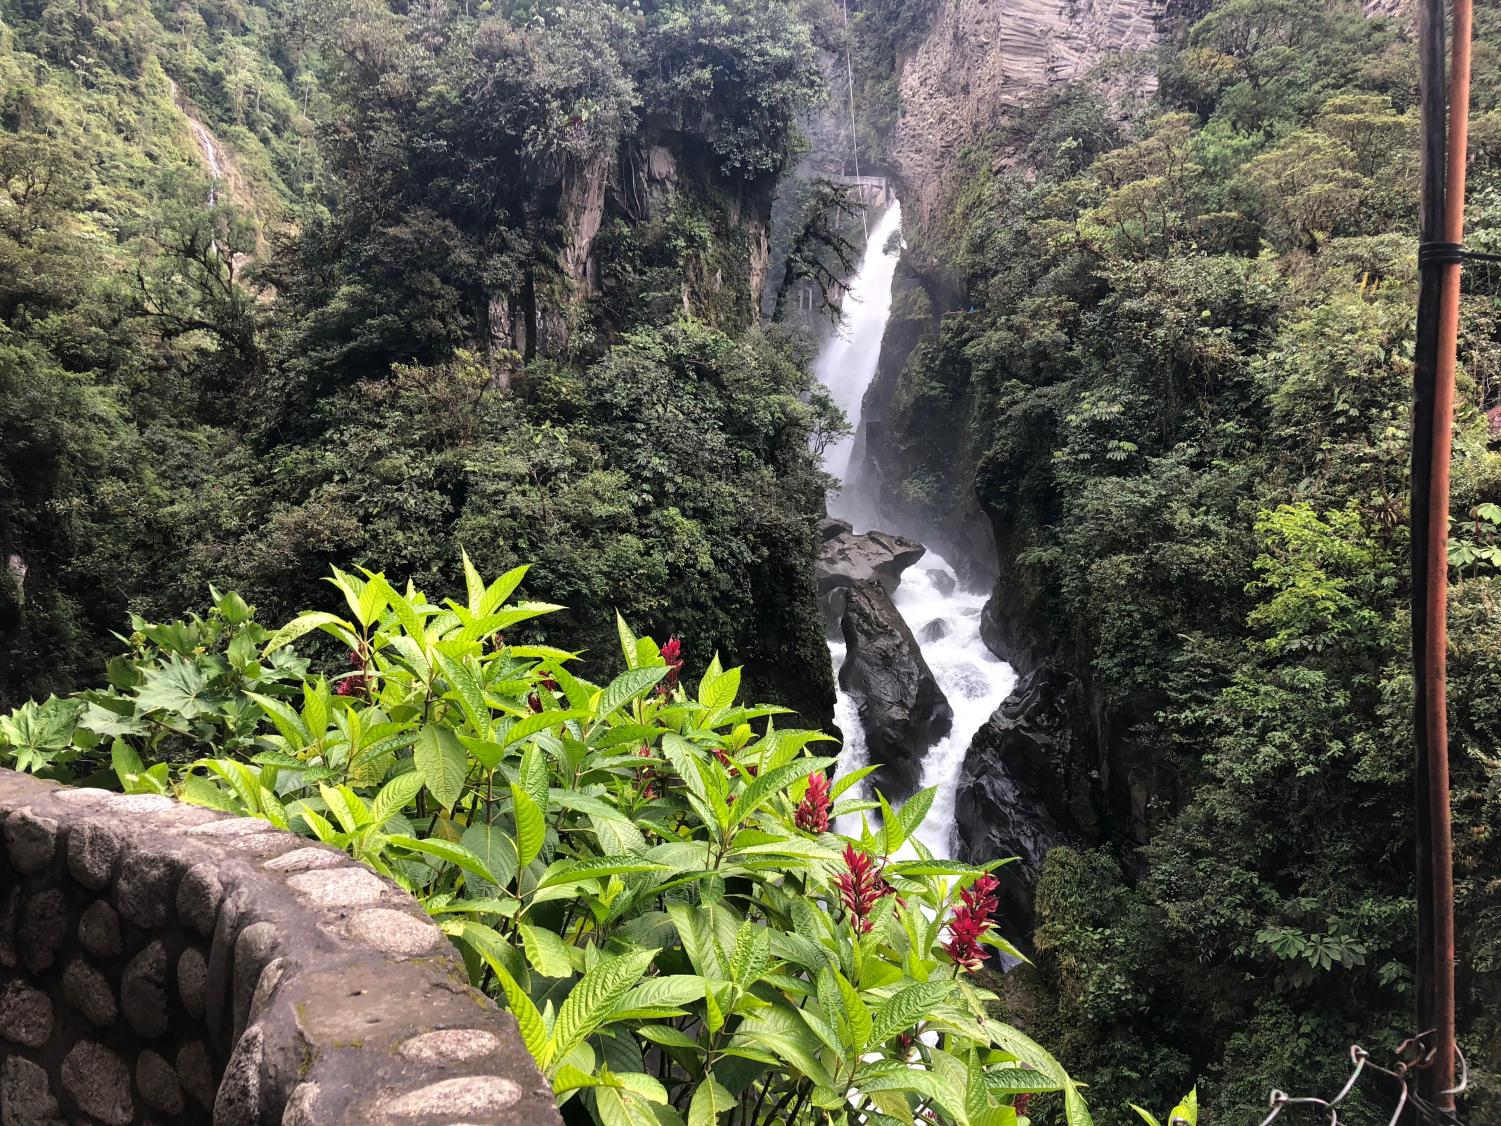 One of the several waterfalls in Banos, Ecuador.